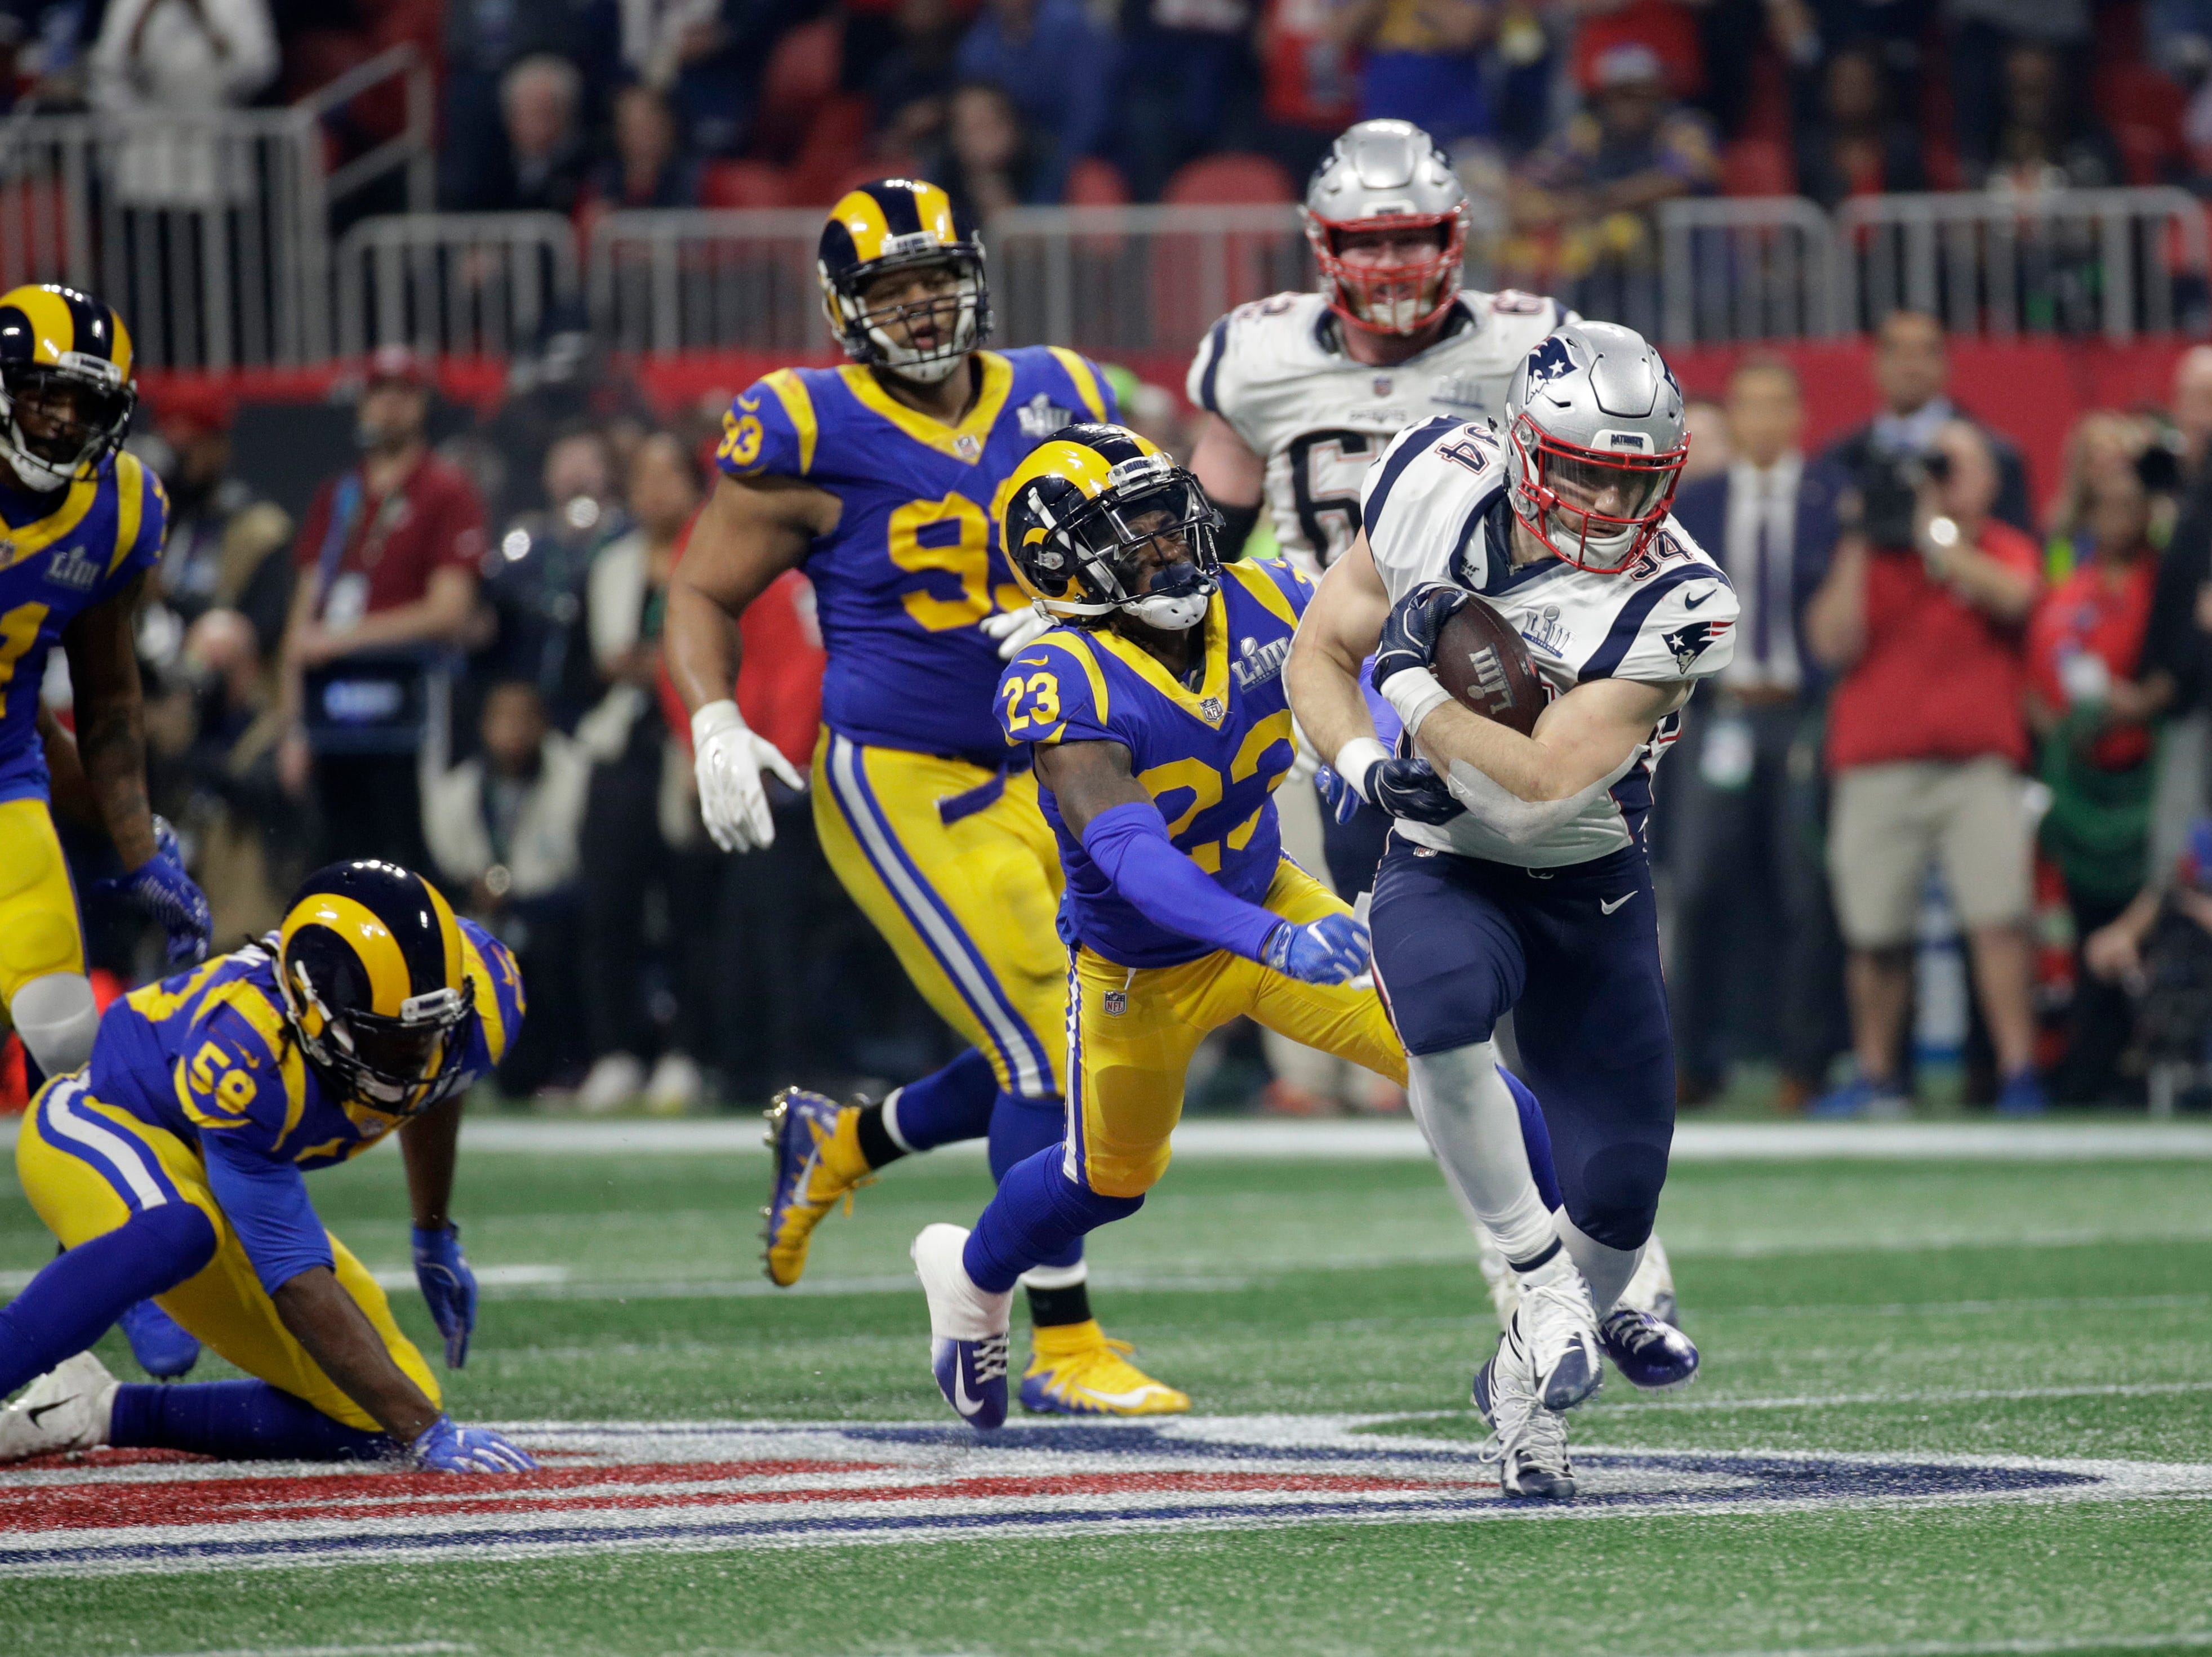 New England Patriots' Rex Burkhead (34) runs past Los Angeles Rams' Nickell Robey-Coleman (23) during the second half.